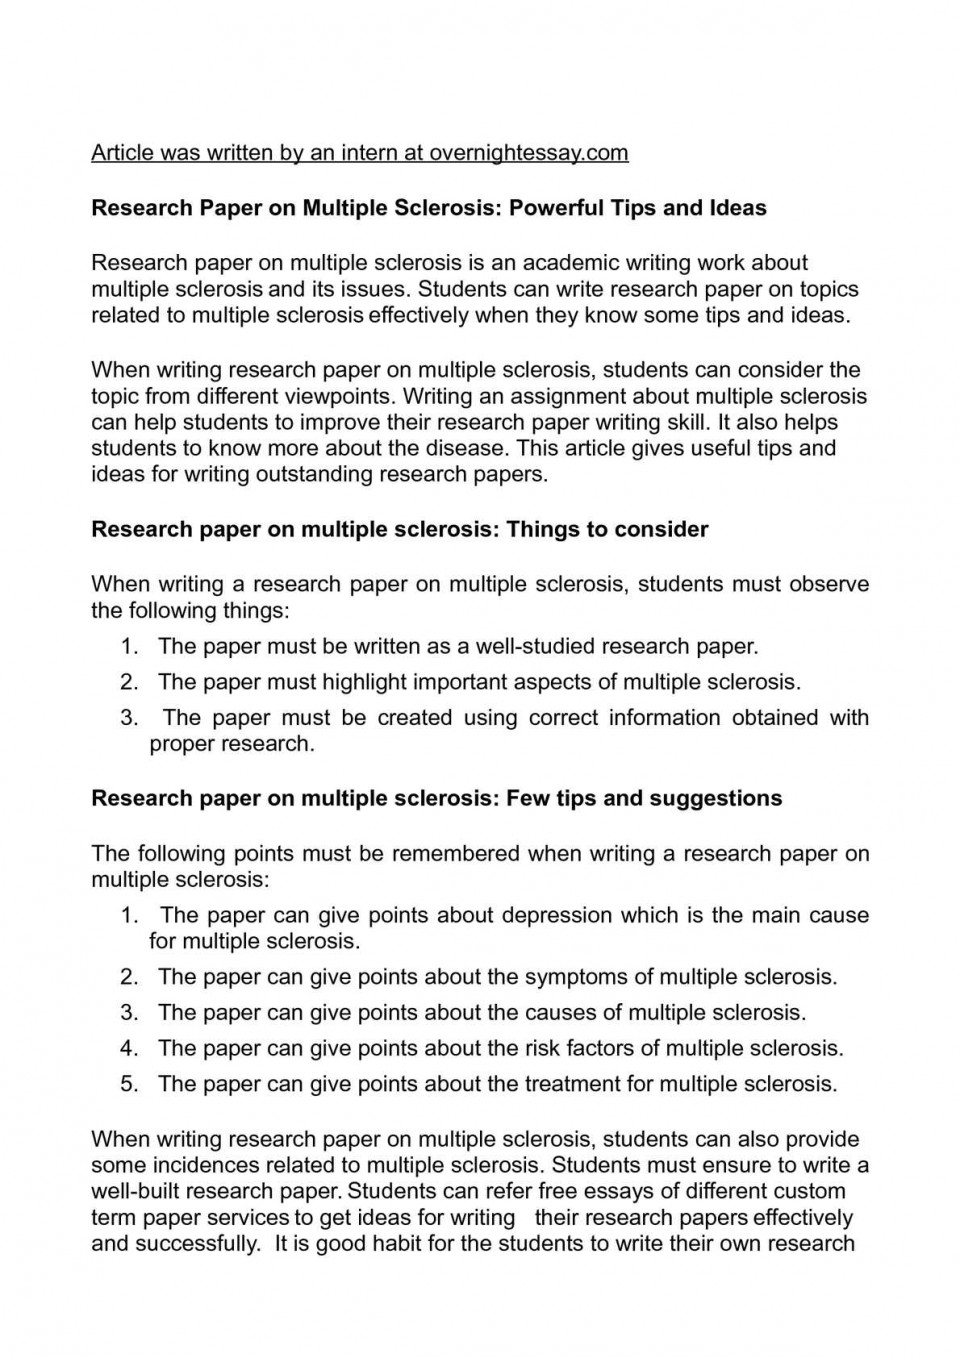 015 Research Paper How To Write Breathtaking A Hook Reference Conclusion For Pdf 960